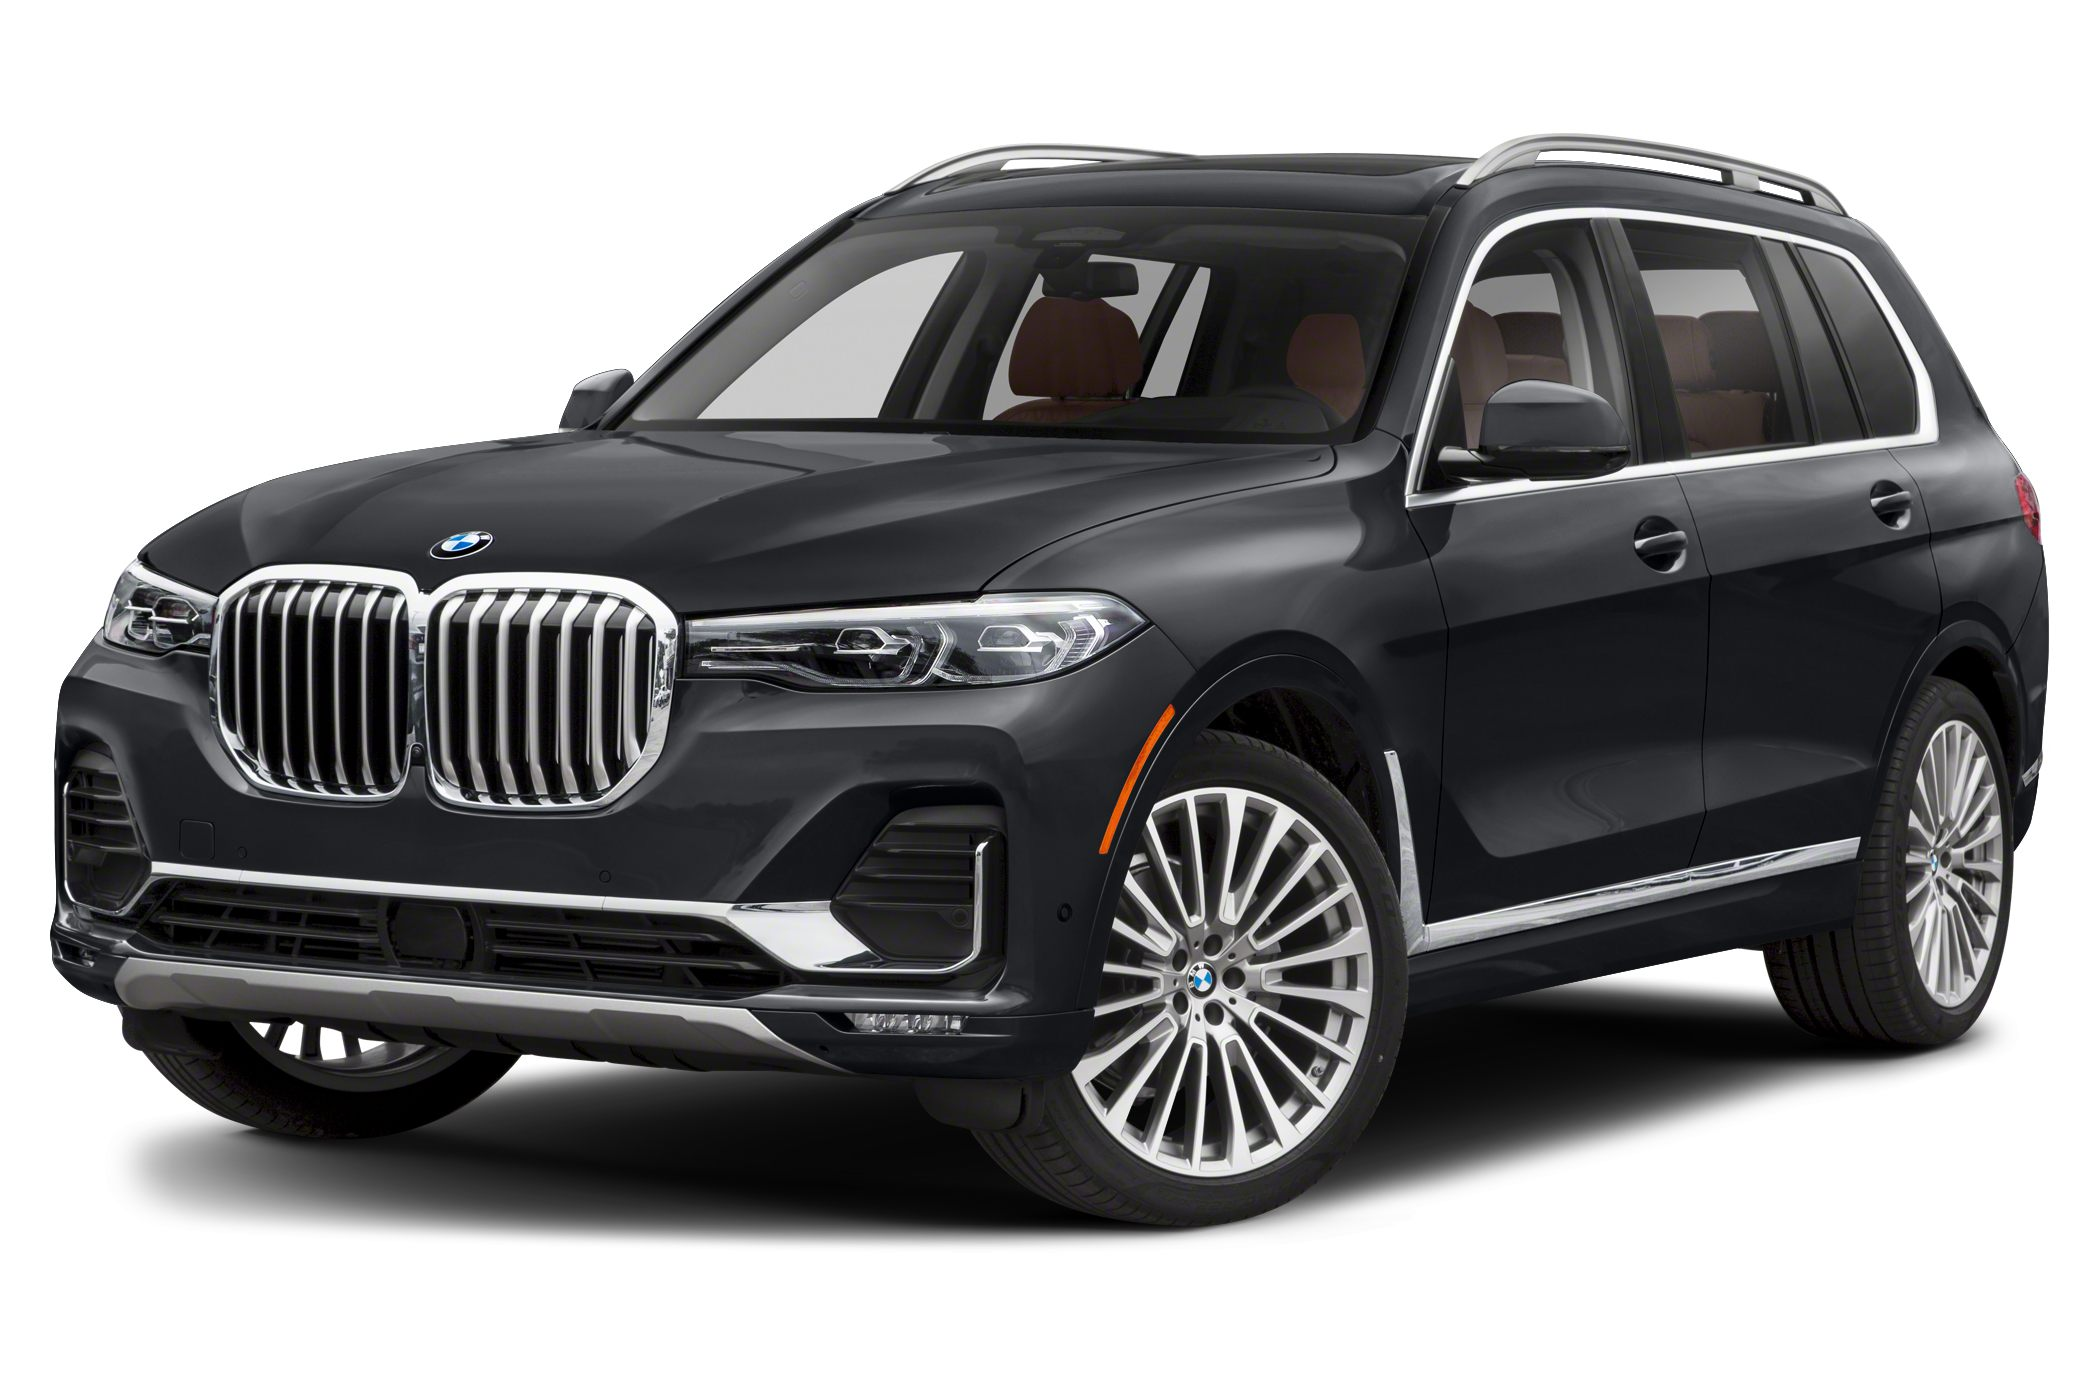 2021 Bmw X7 M50i 4dr All Wheel Drive Sports Activity Vehicle Specs And Prices